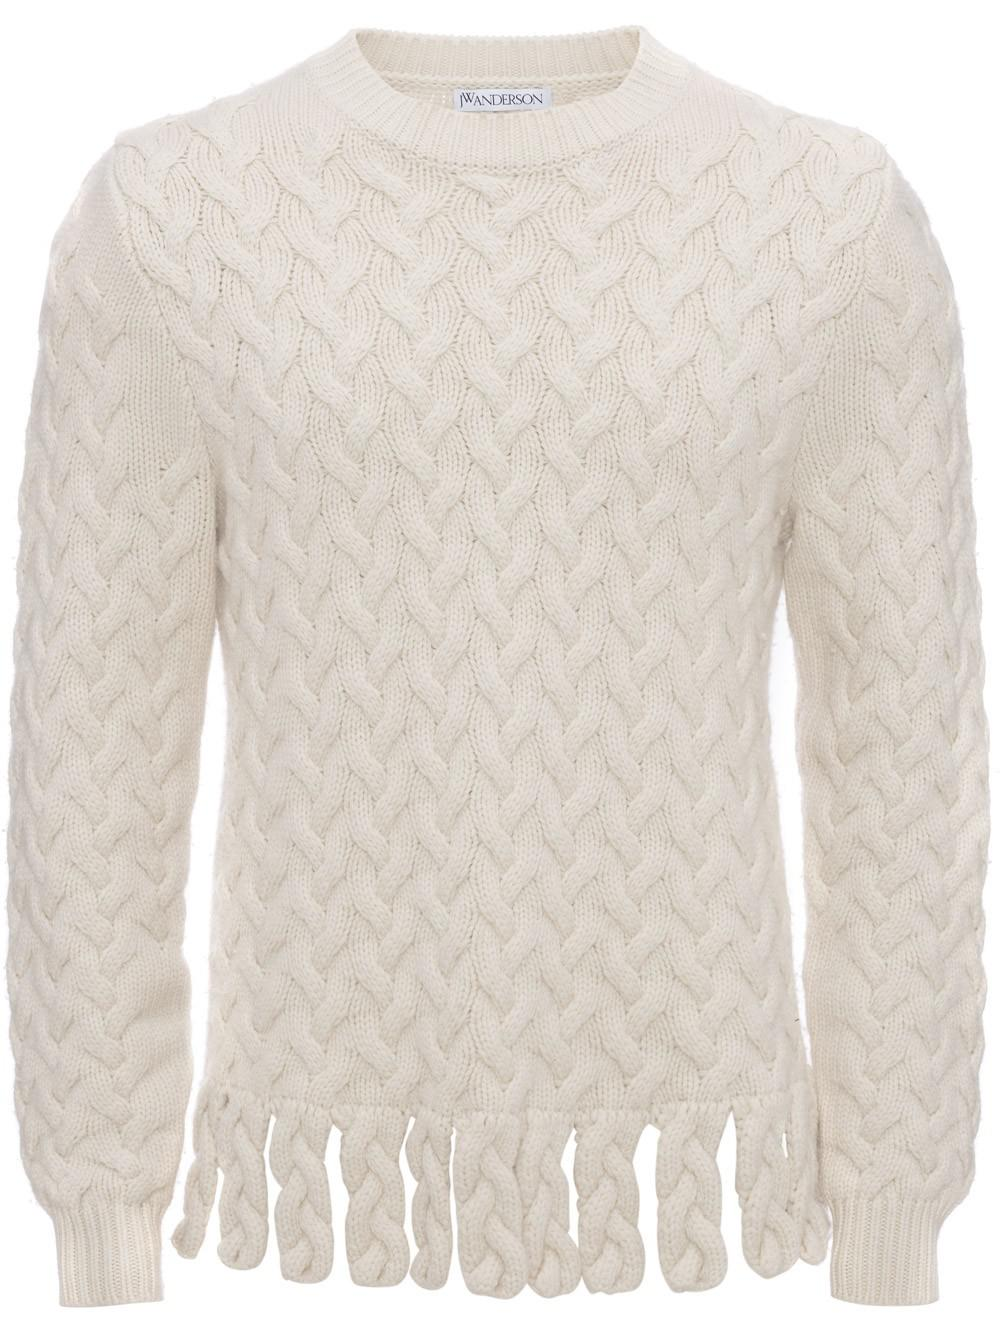 Free Shipping With Credit Card fringe chunky jumper - White J.W.Anderson Cheap 2018 32DSdp